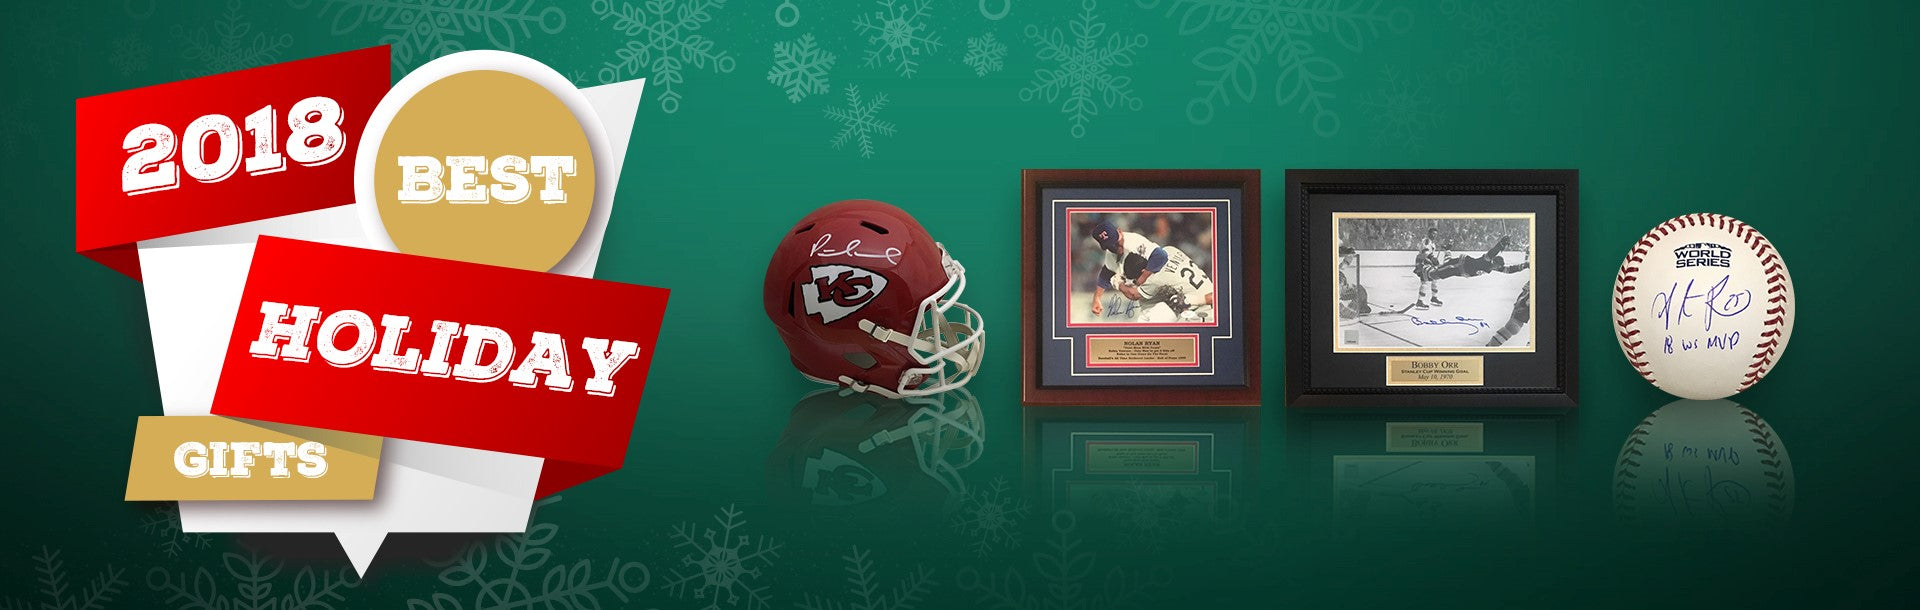 2018 Best Holiday Autographed Sports Memorabilia Gifts